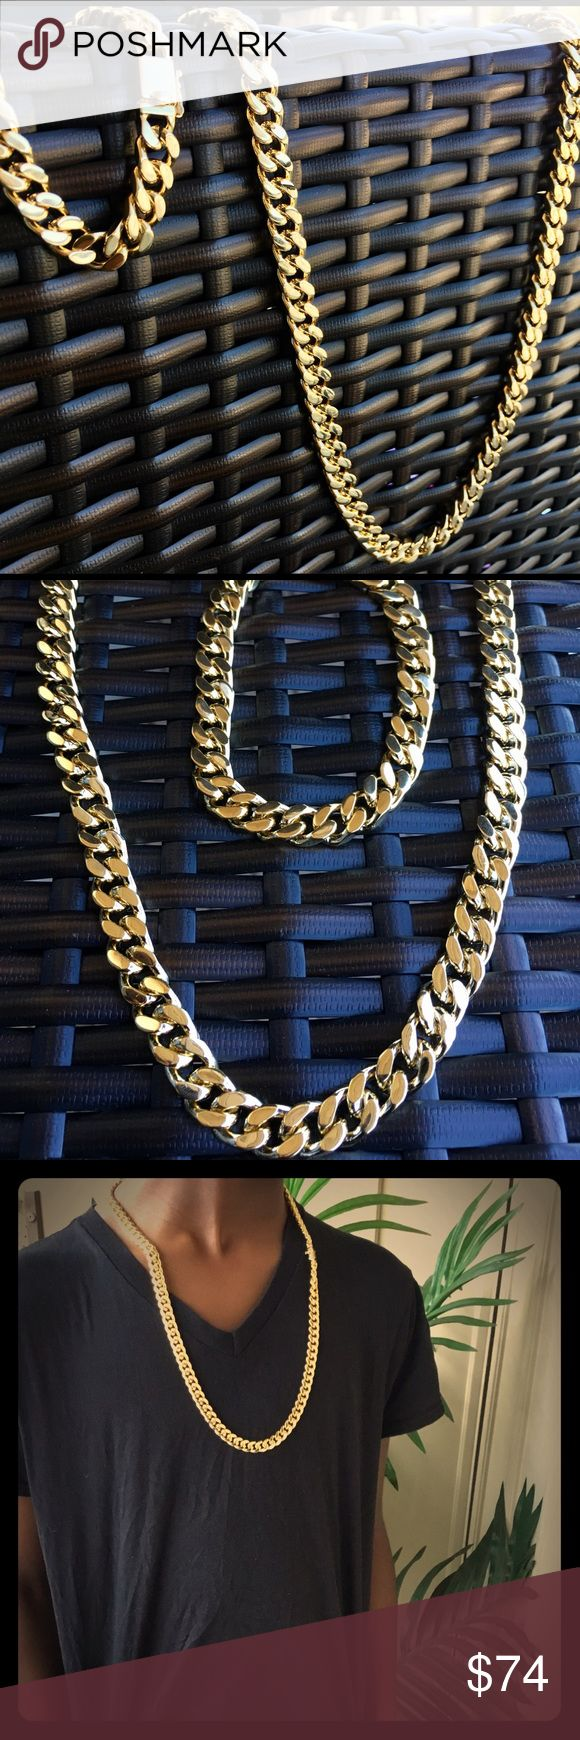 14K Gold Finish Cuban Link Chain & Bracelet Set Brand new never worn before. Chunky Men's Miami Cuban Link Gold Chain and bracelet set. 14k Gold plated Stainless steel. A must for the summer and vacation! 30 inches in length and 14mm thick! Accessories Jewelry